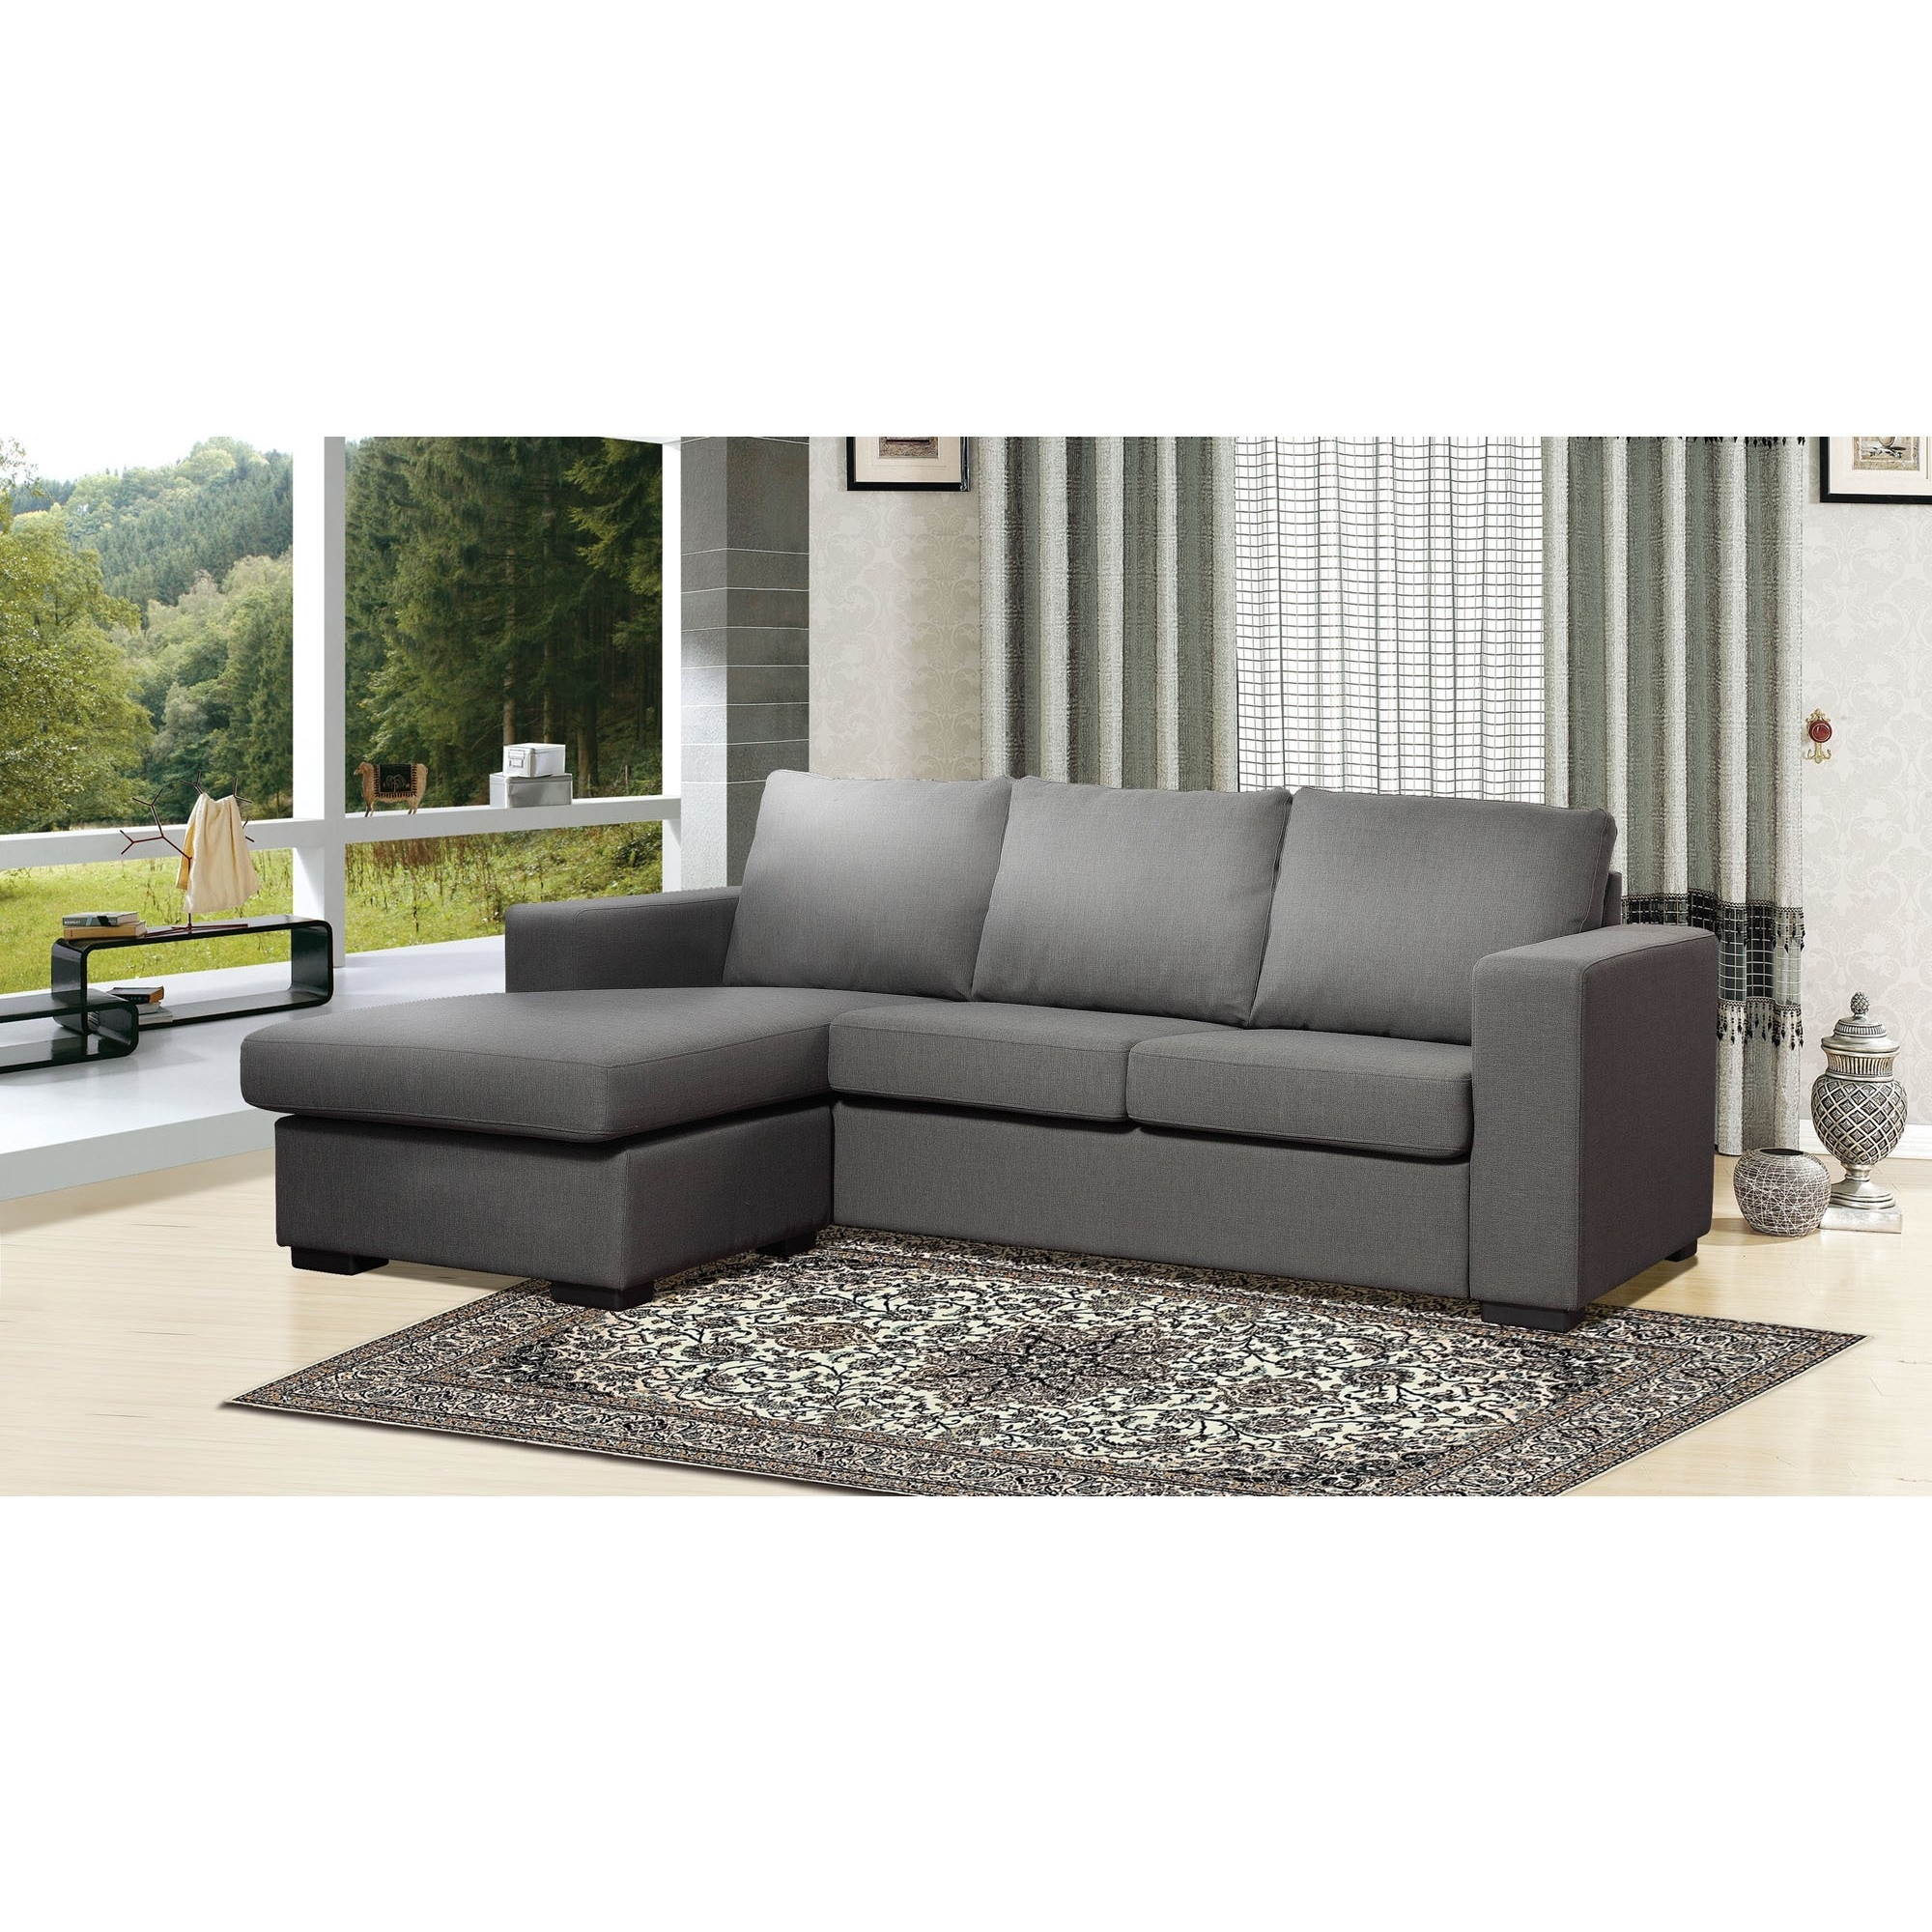 Furniture : Sectional Couch Rug Placement Corner Couch With Cup For Sectional Sofas At Bc Canada (View 4 of 15)